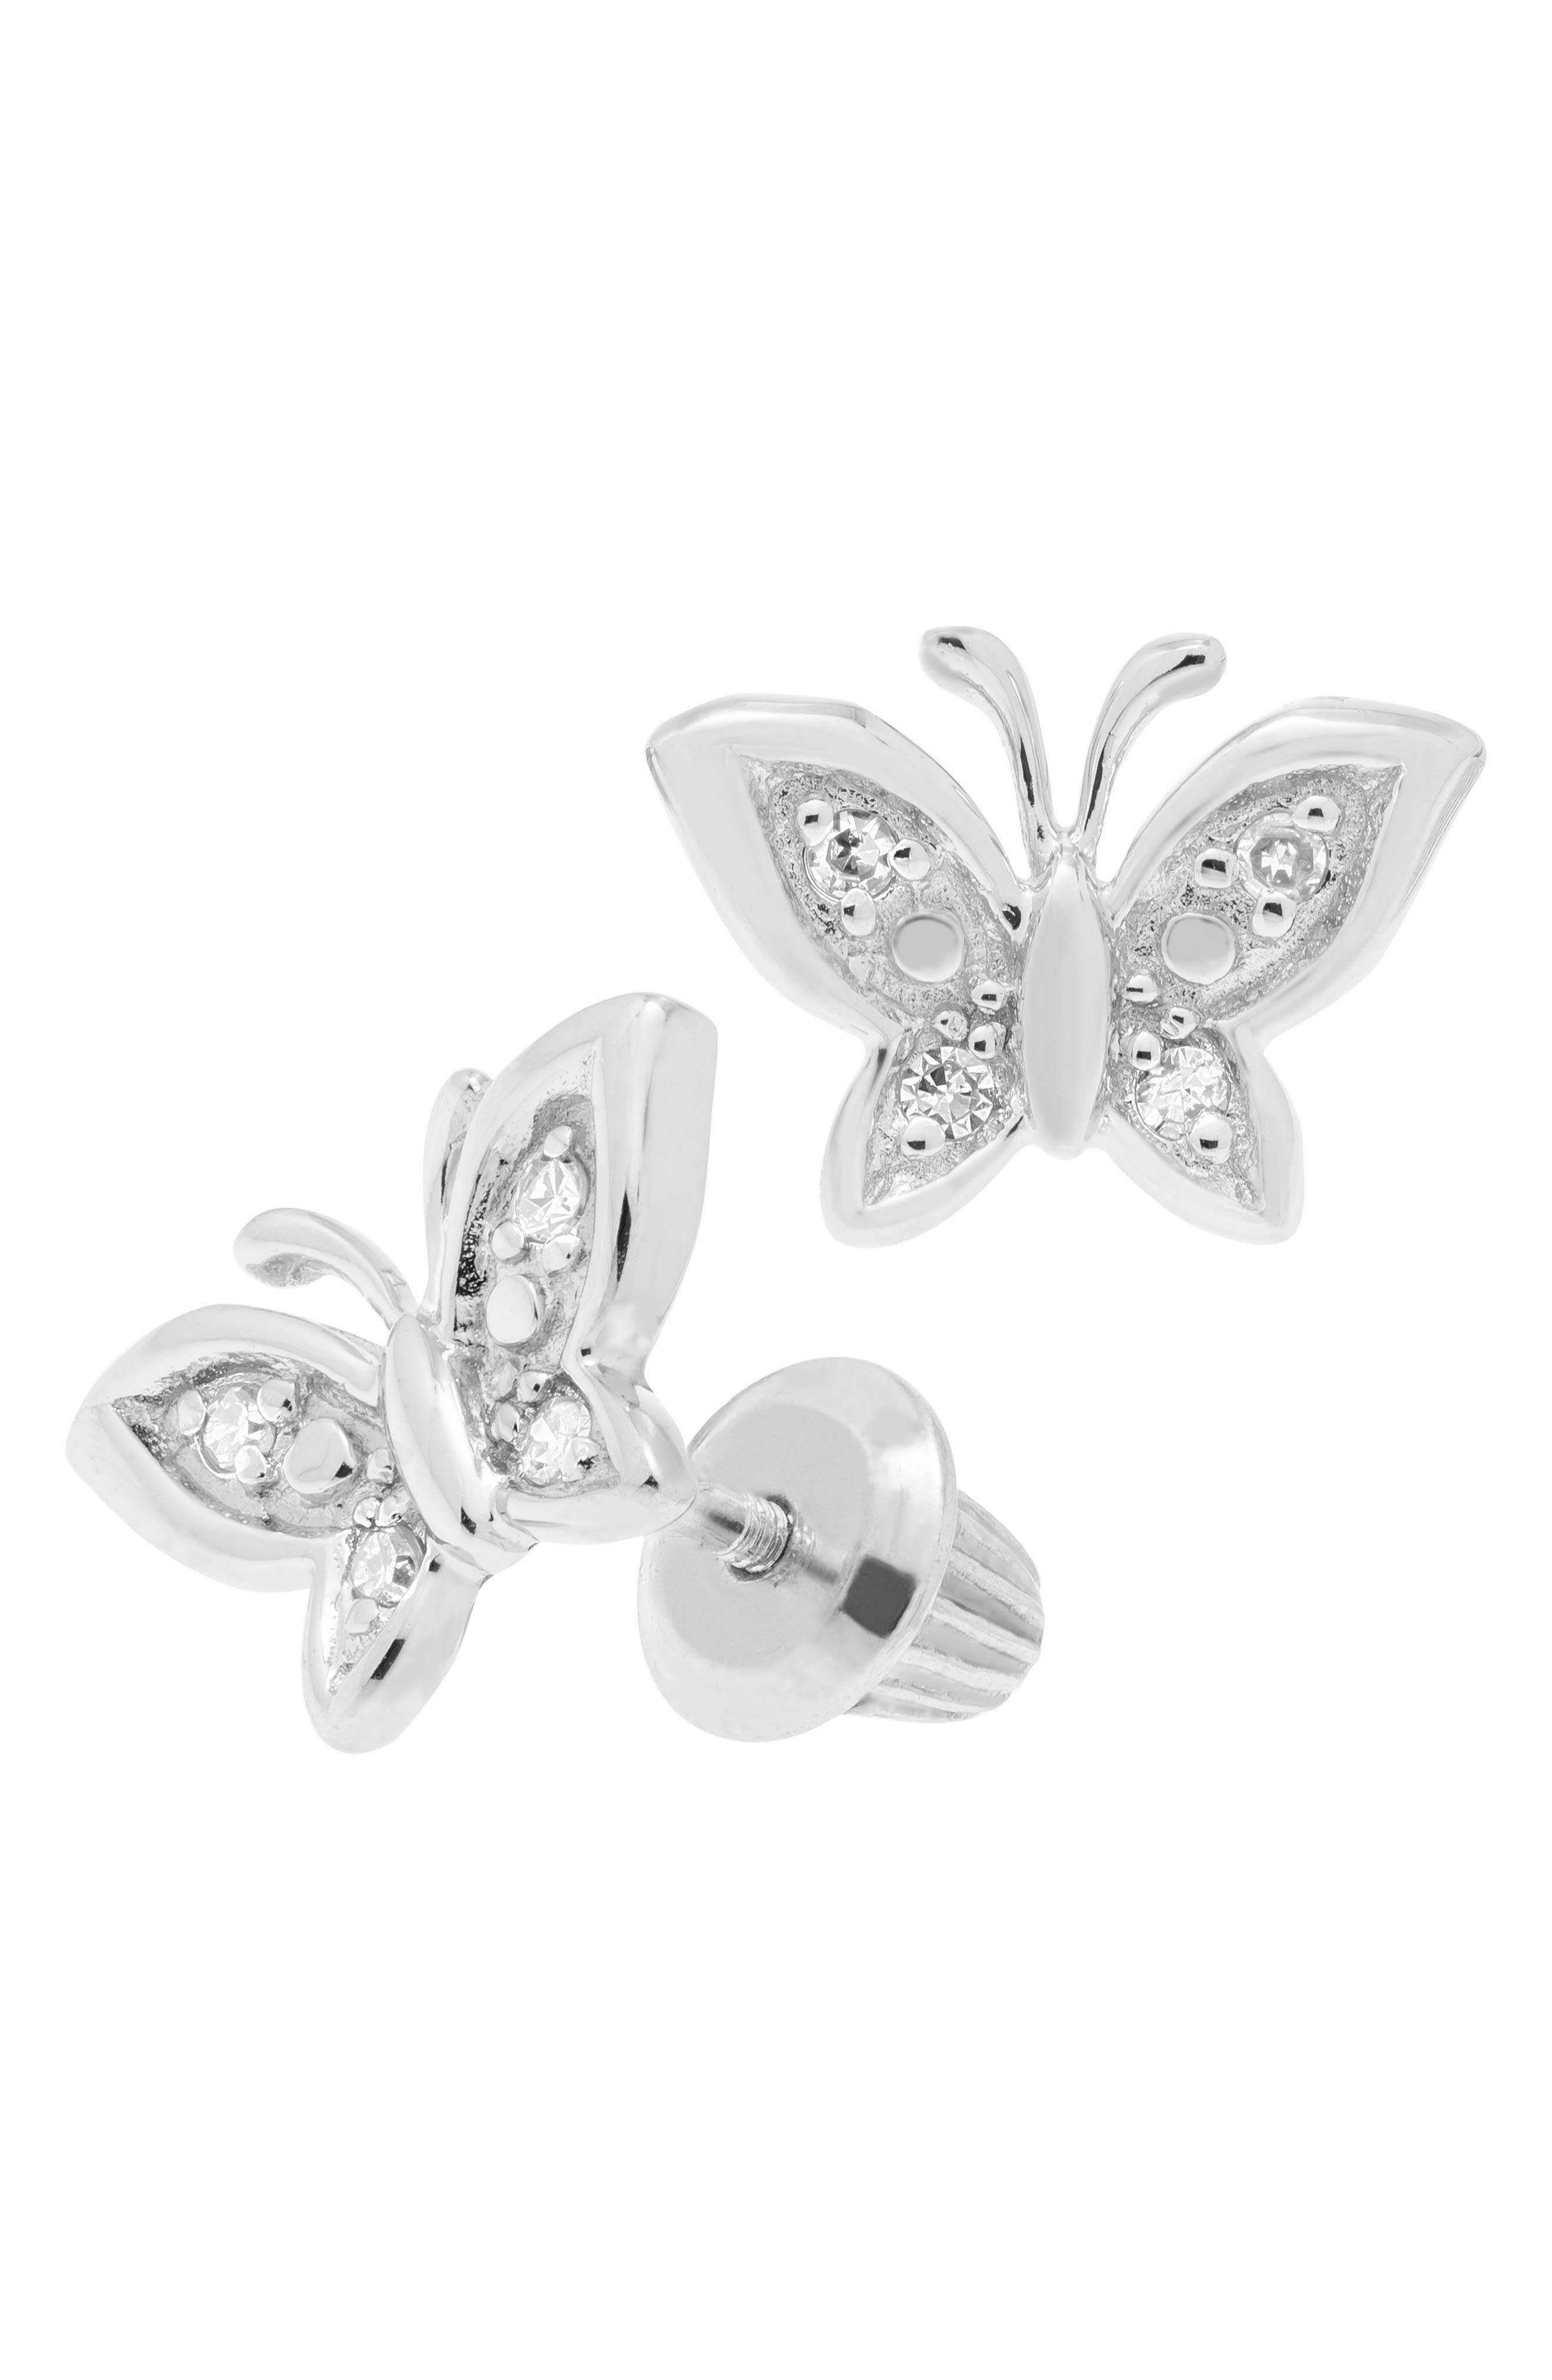 Sterling Silver & Diamond Butterfly Stud Earrings,                             Main thumbnail 1, color,                             SILVER